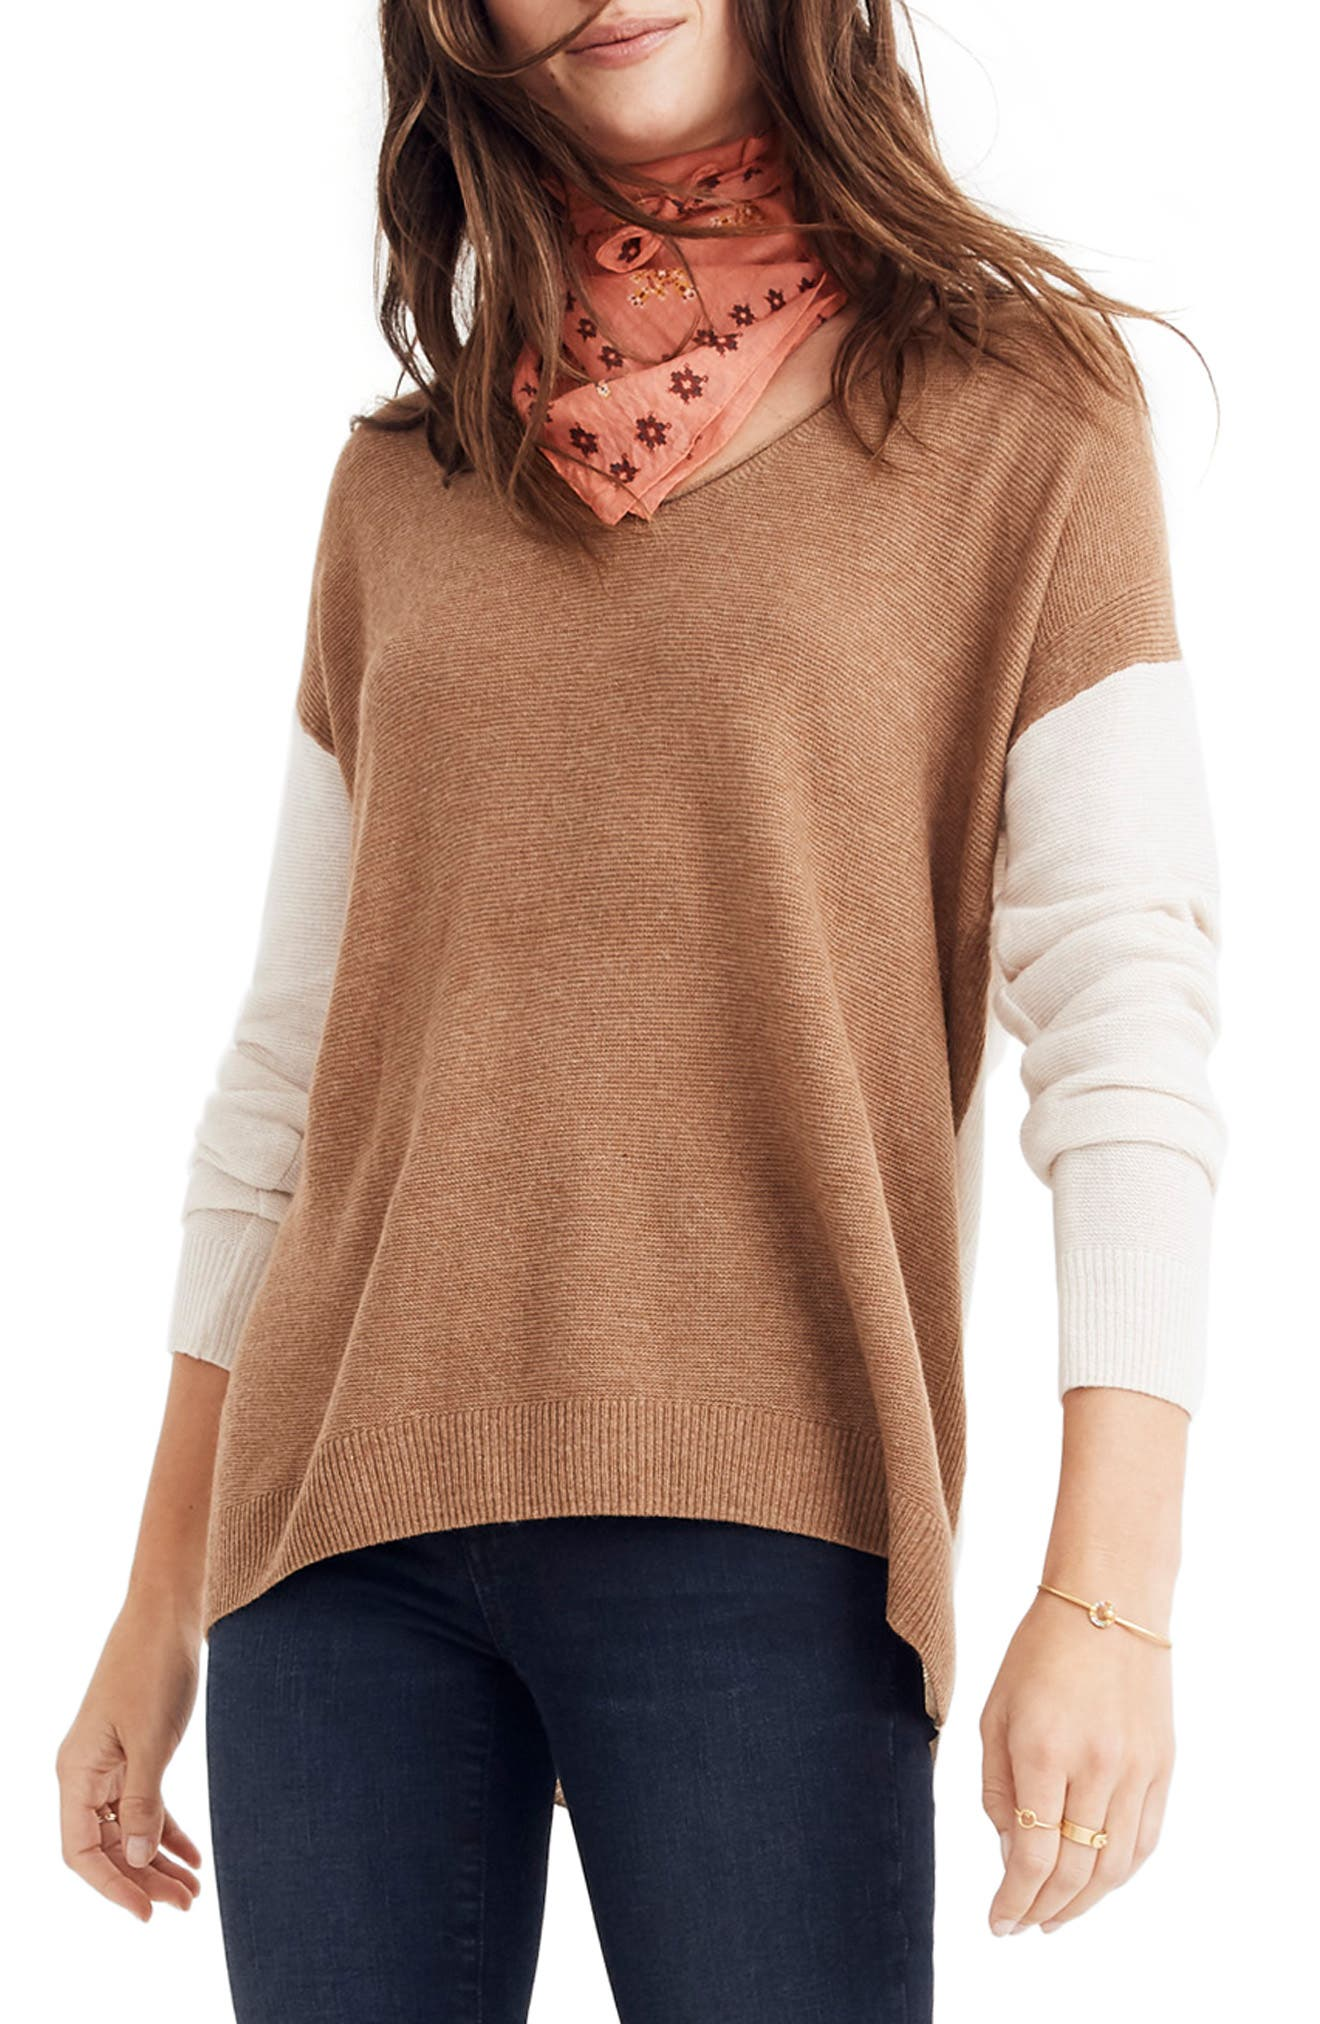 MADEWELL Kimball Colorblock Sweater, Main, color, 021